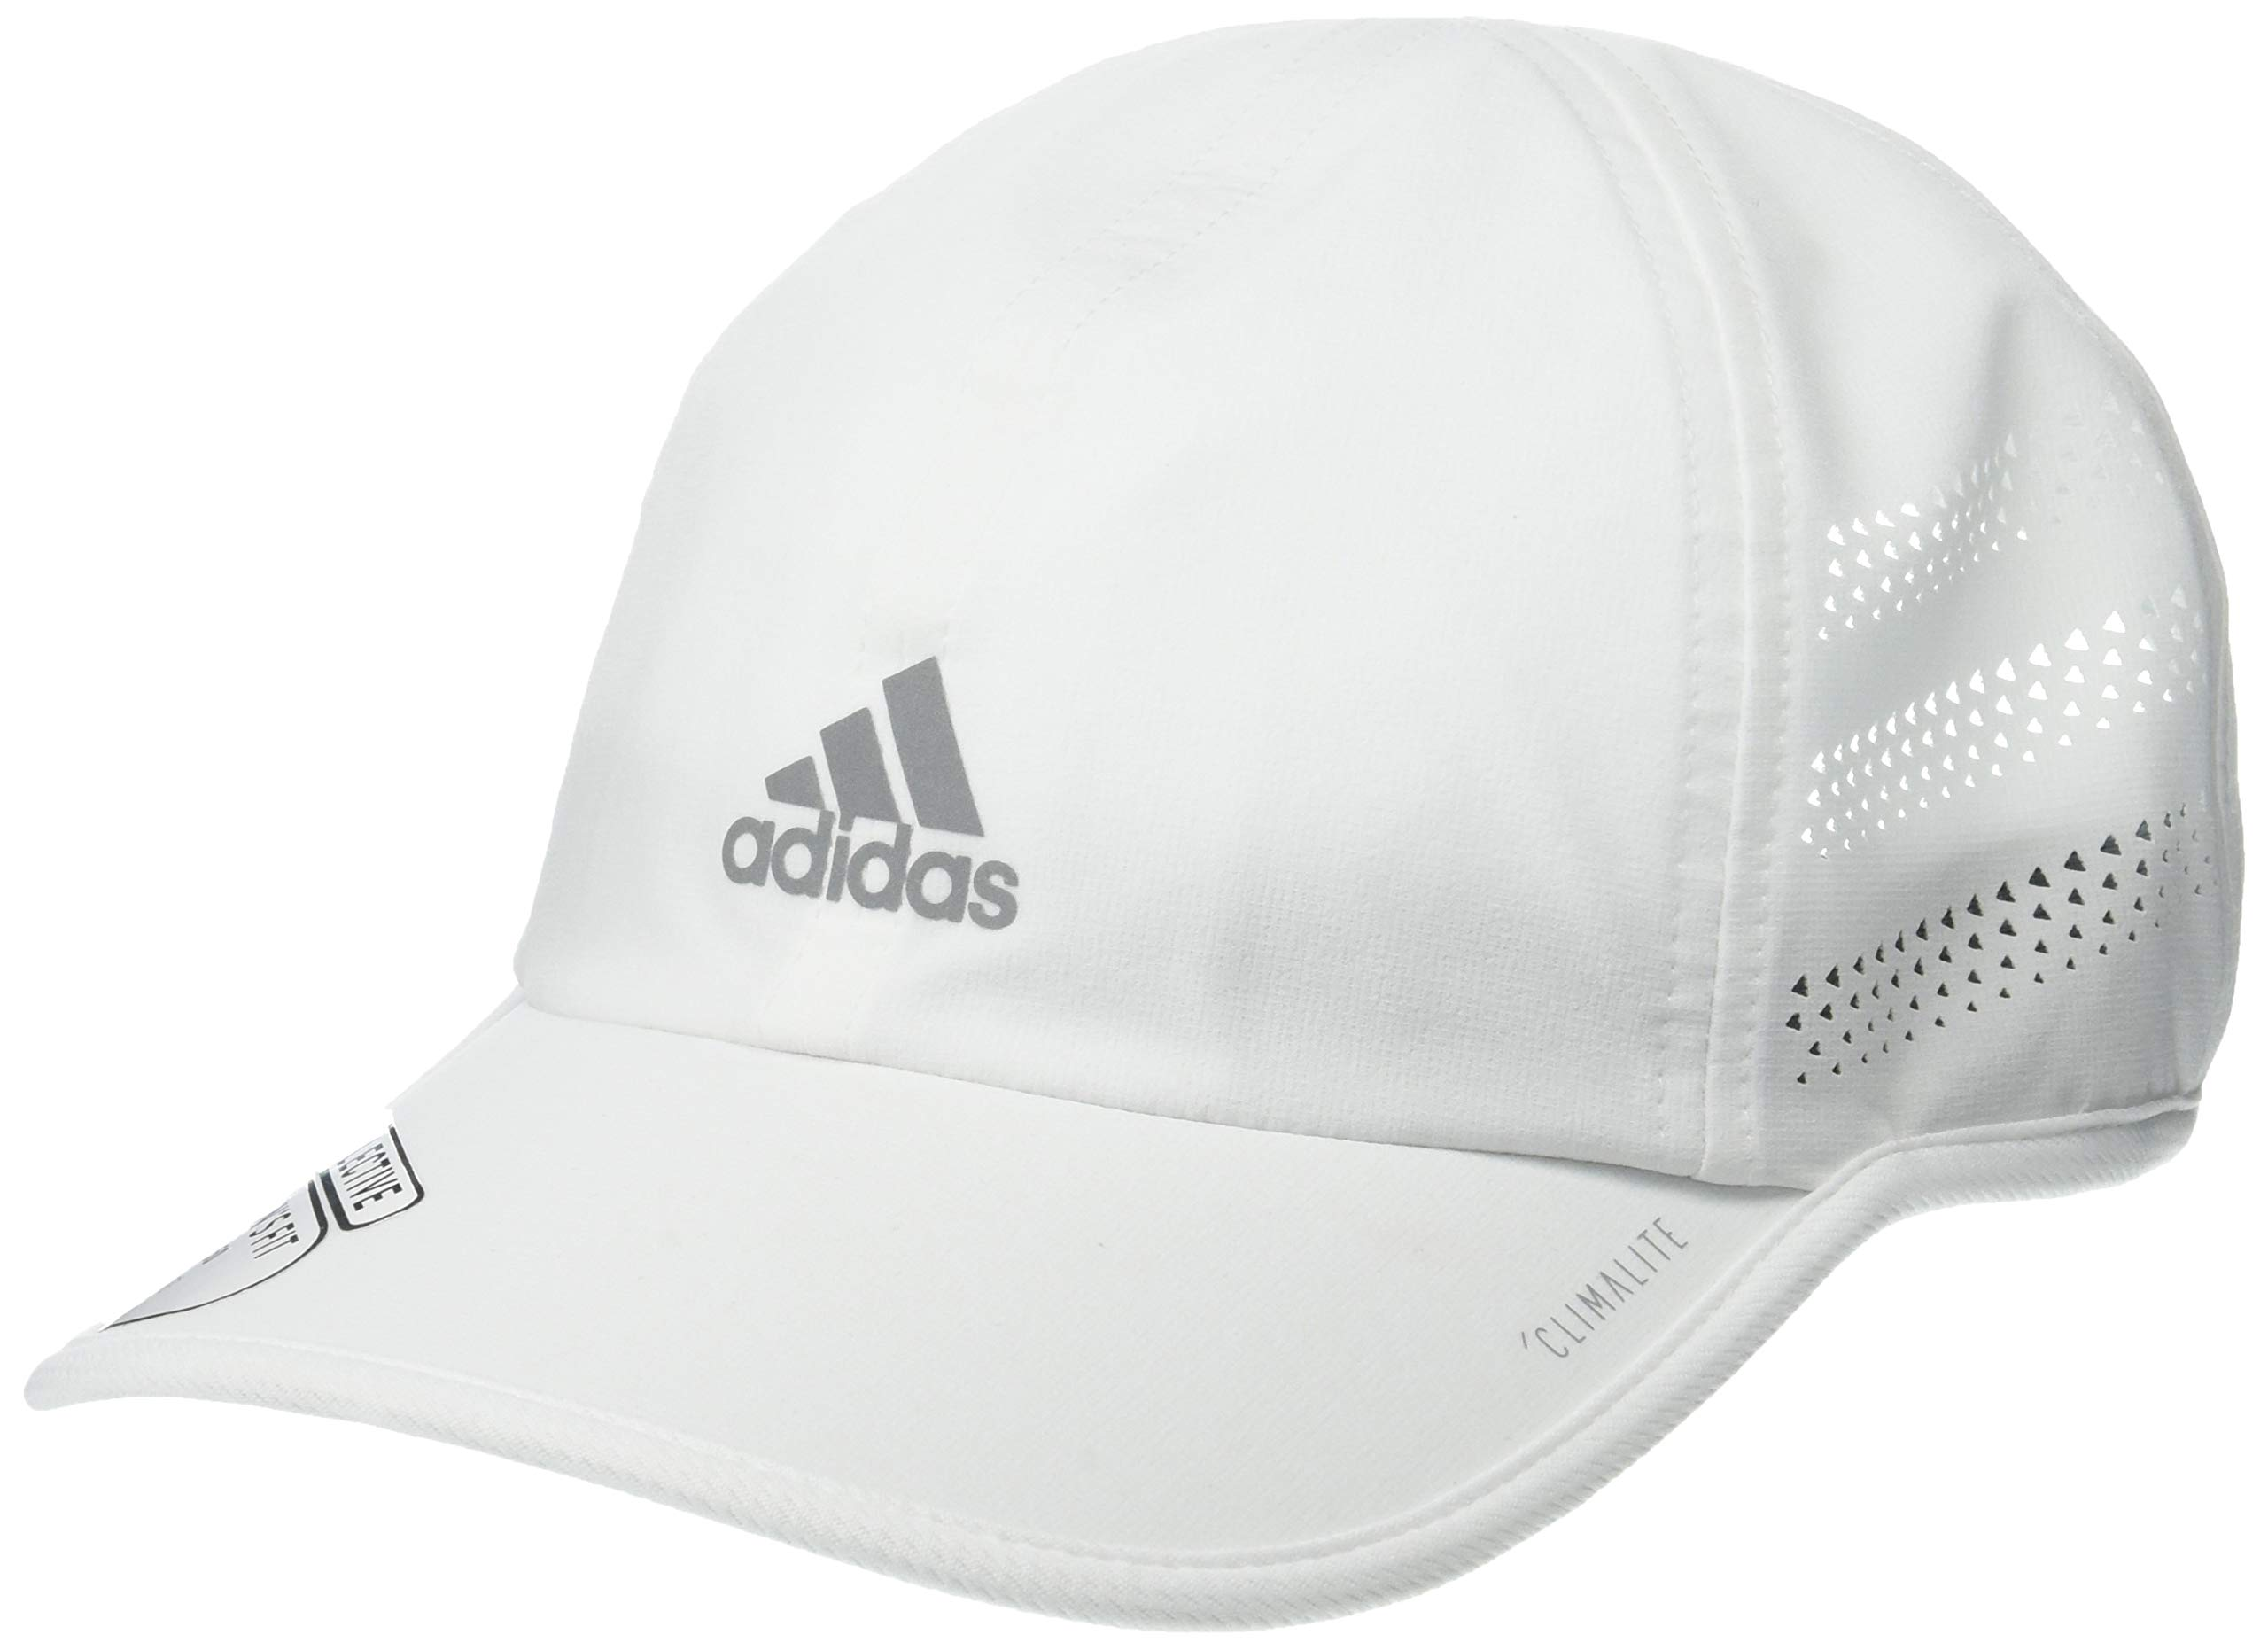 adidas Women's Superlite Pro Relaxed Adjustable Cap, White/Silver Reflective, One Size